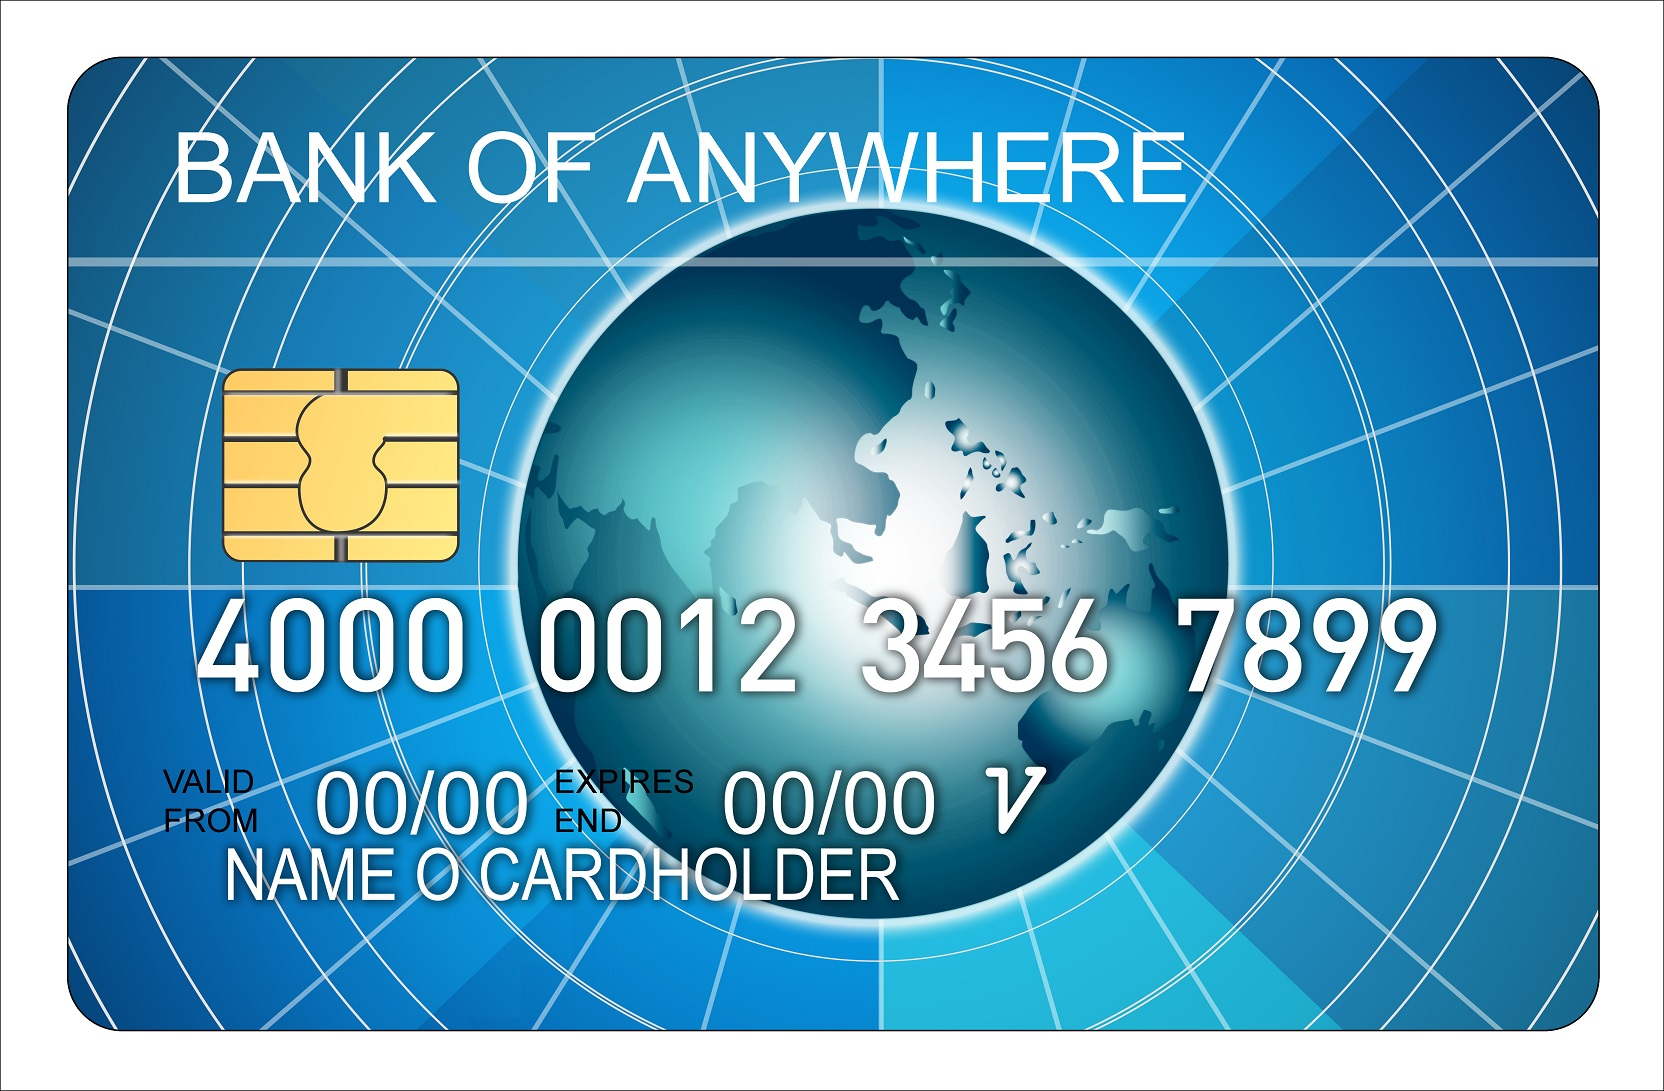 Gladly Accept Credit Cards - Easiest Way